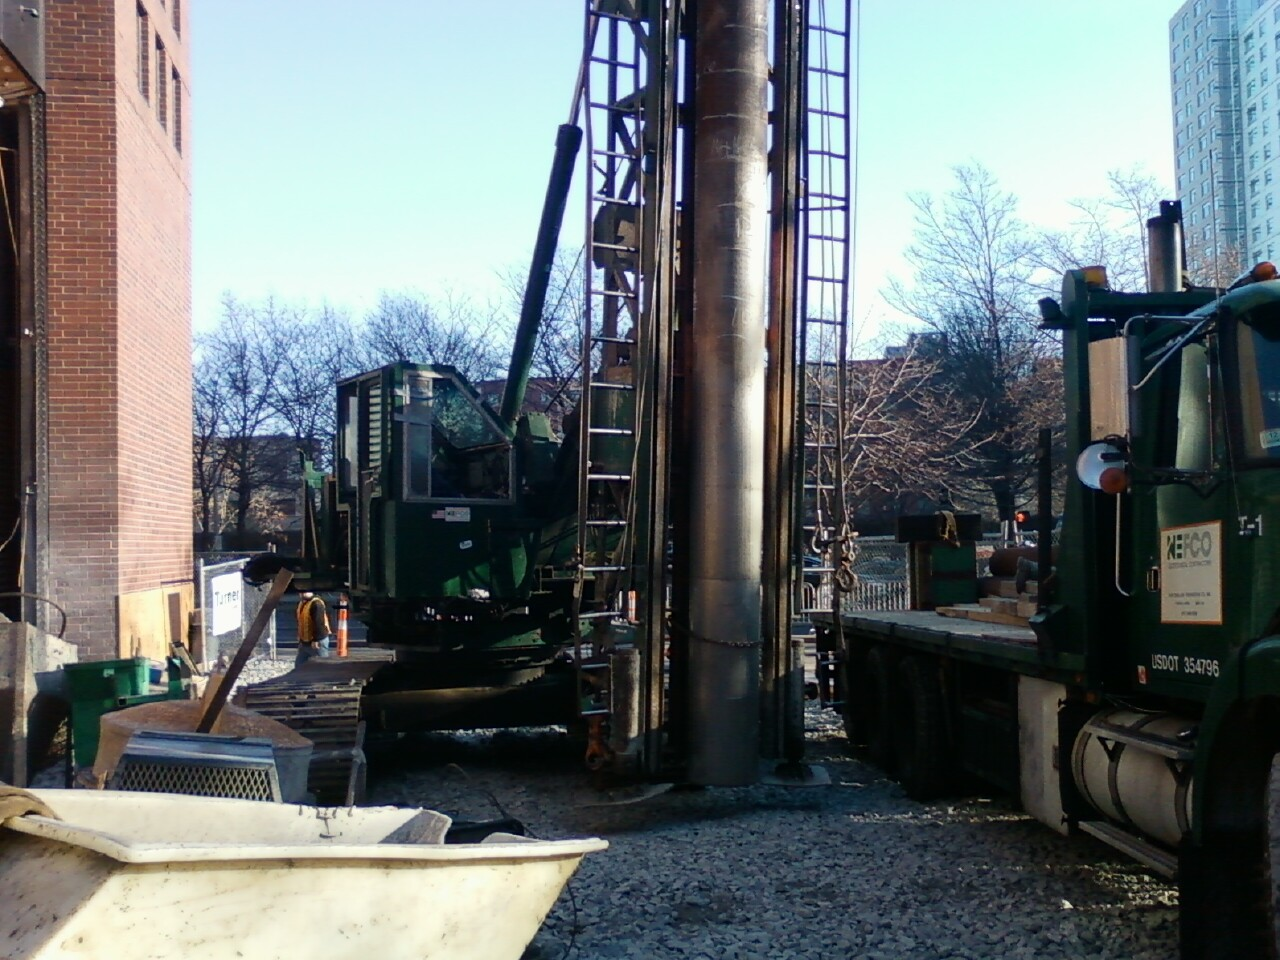 NEFCO's pile driver shoehorned into a tight space